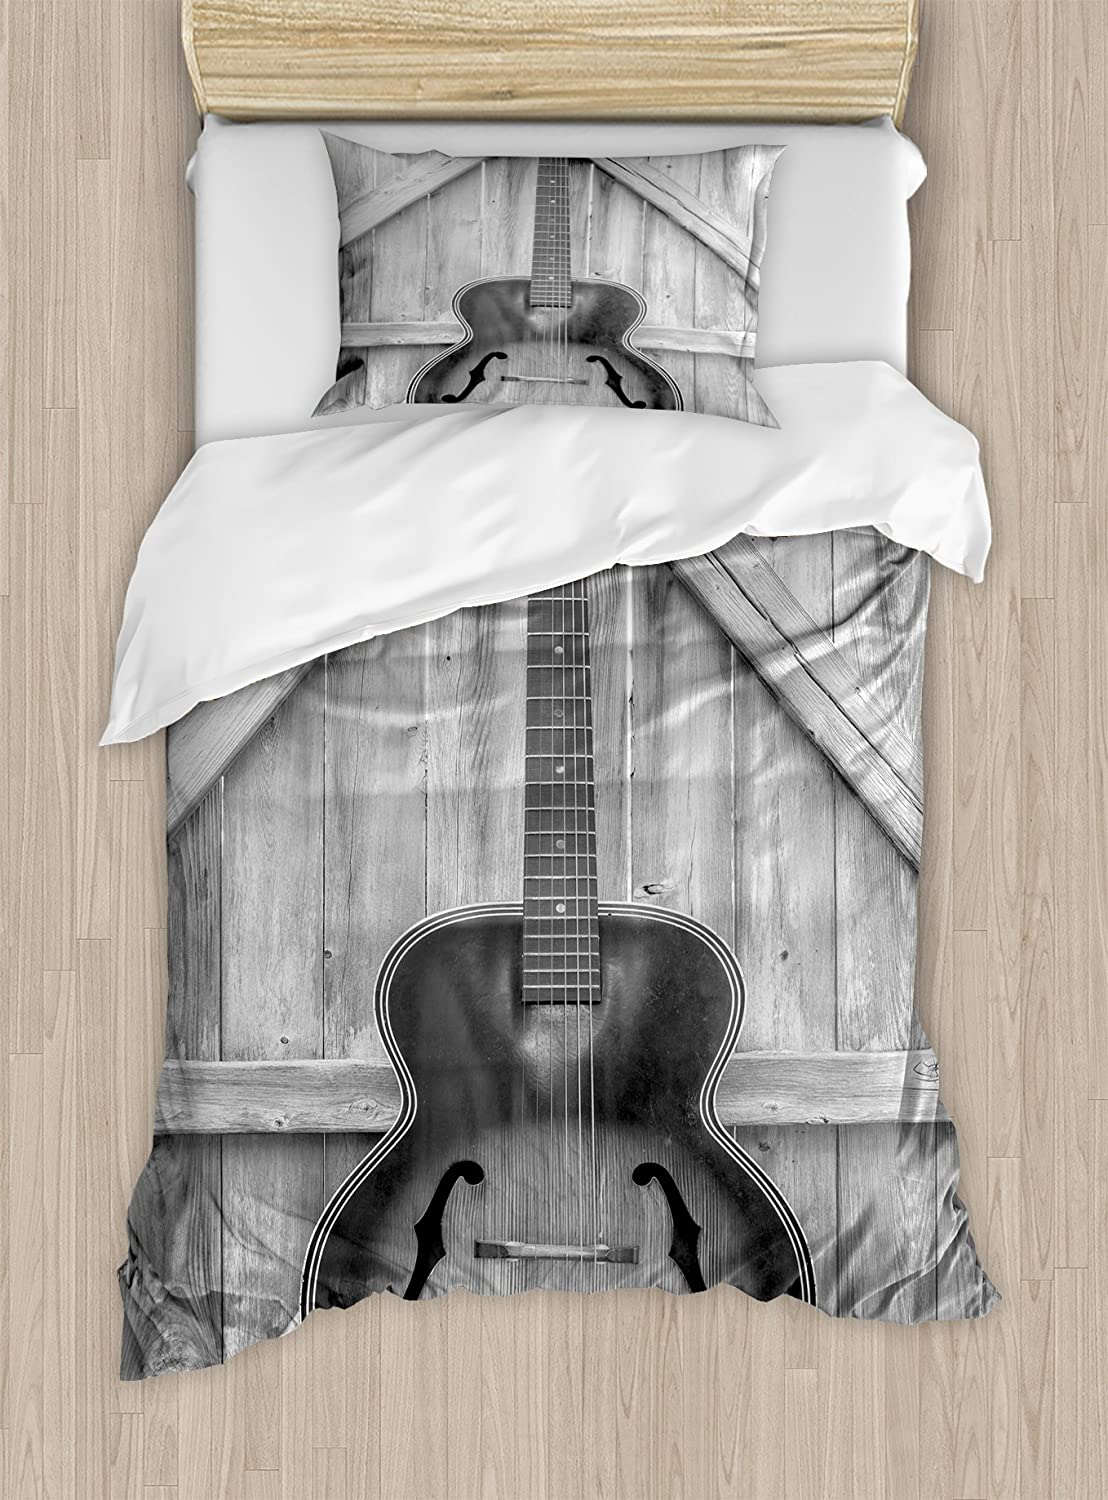 Ambesonne Western Duvet Cover Set, Vintage Acoustic Instrument Guitar Hanged on Old Wooden Door Fences Country Ranch, Decorative 2 Piece Bedding Set with 1 Pillow Sham, Twin Size, Black Grey